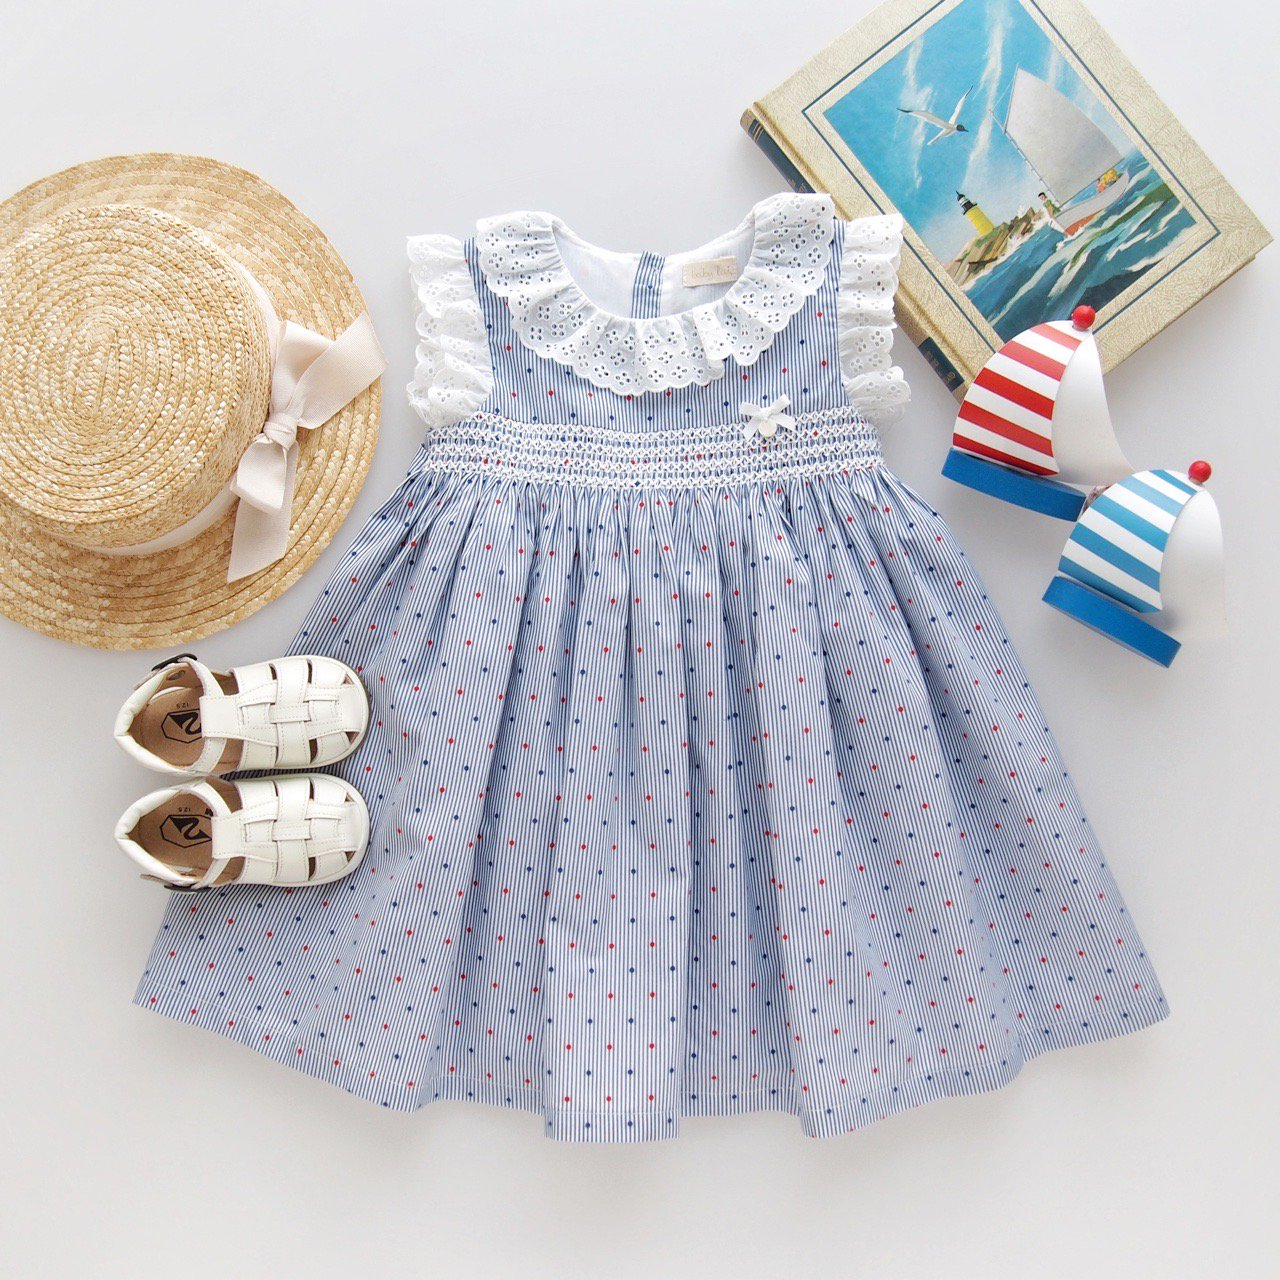 <img class='new_mark_img1' src='https://img.shop-pro.jp/img/new/icons1.gif' style='border:none;display:inline;margin:0px;padding:0px;width:auto;' />baby lai/ Laivicar - Dots stripes dress